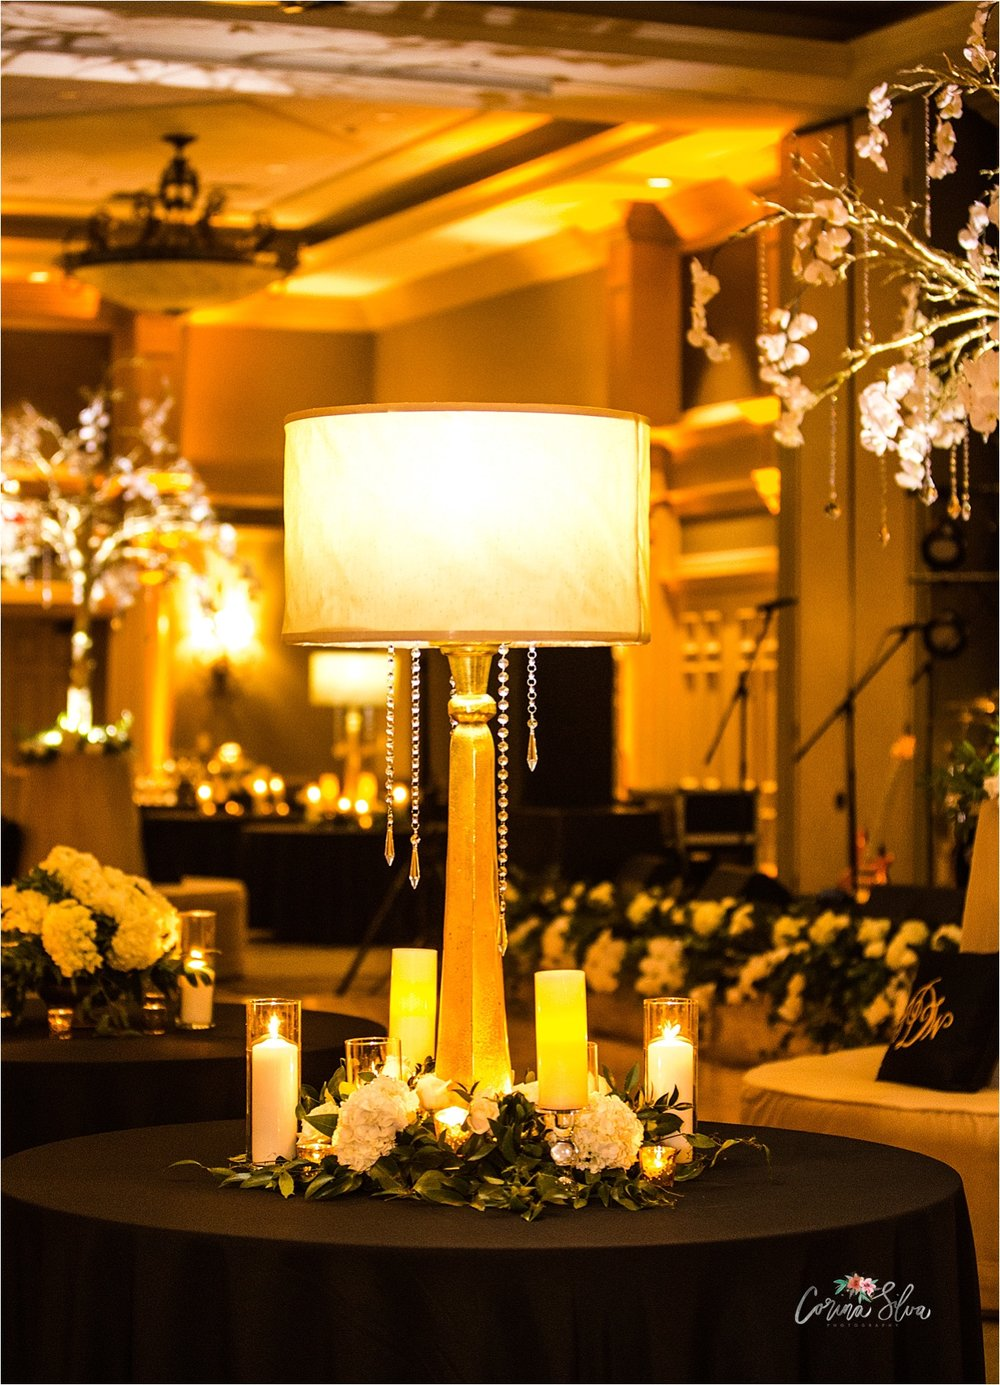 RSG-Event-and-Designs-luxury-wedding-decor-photos, Corina-Silva-Studios_0034.jpg